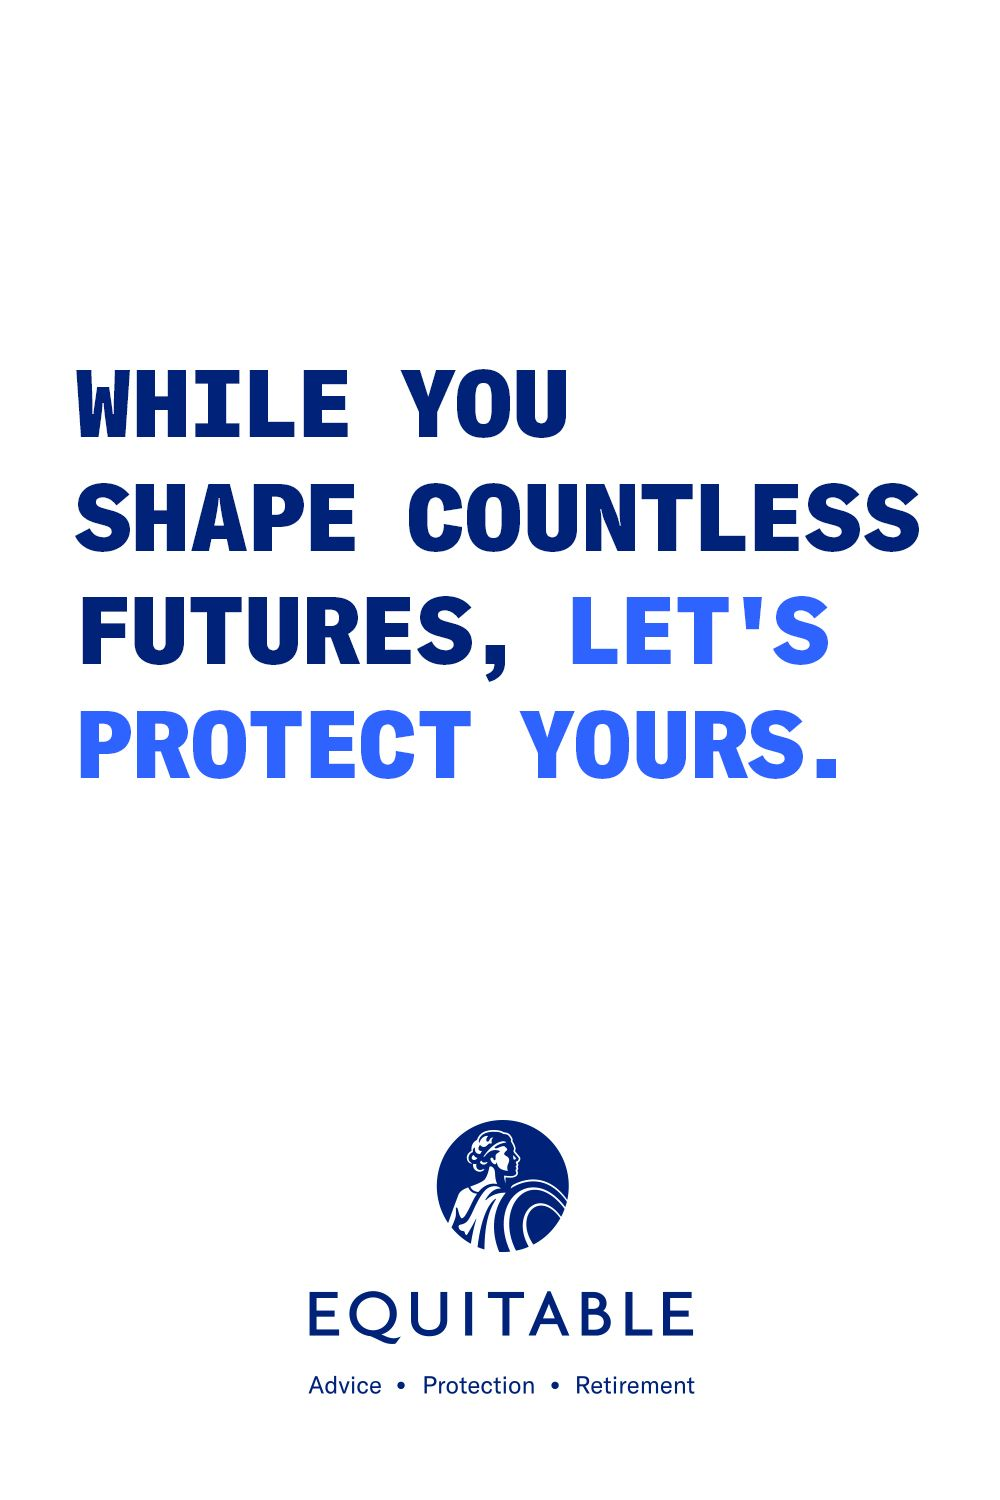 While you shape countless futures, let's protect yours.